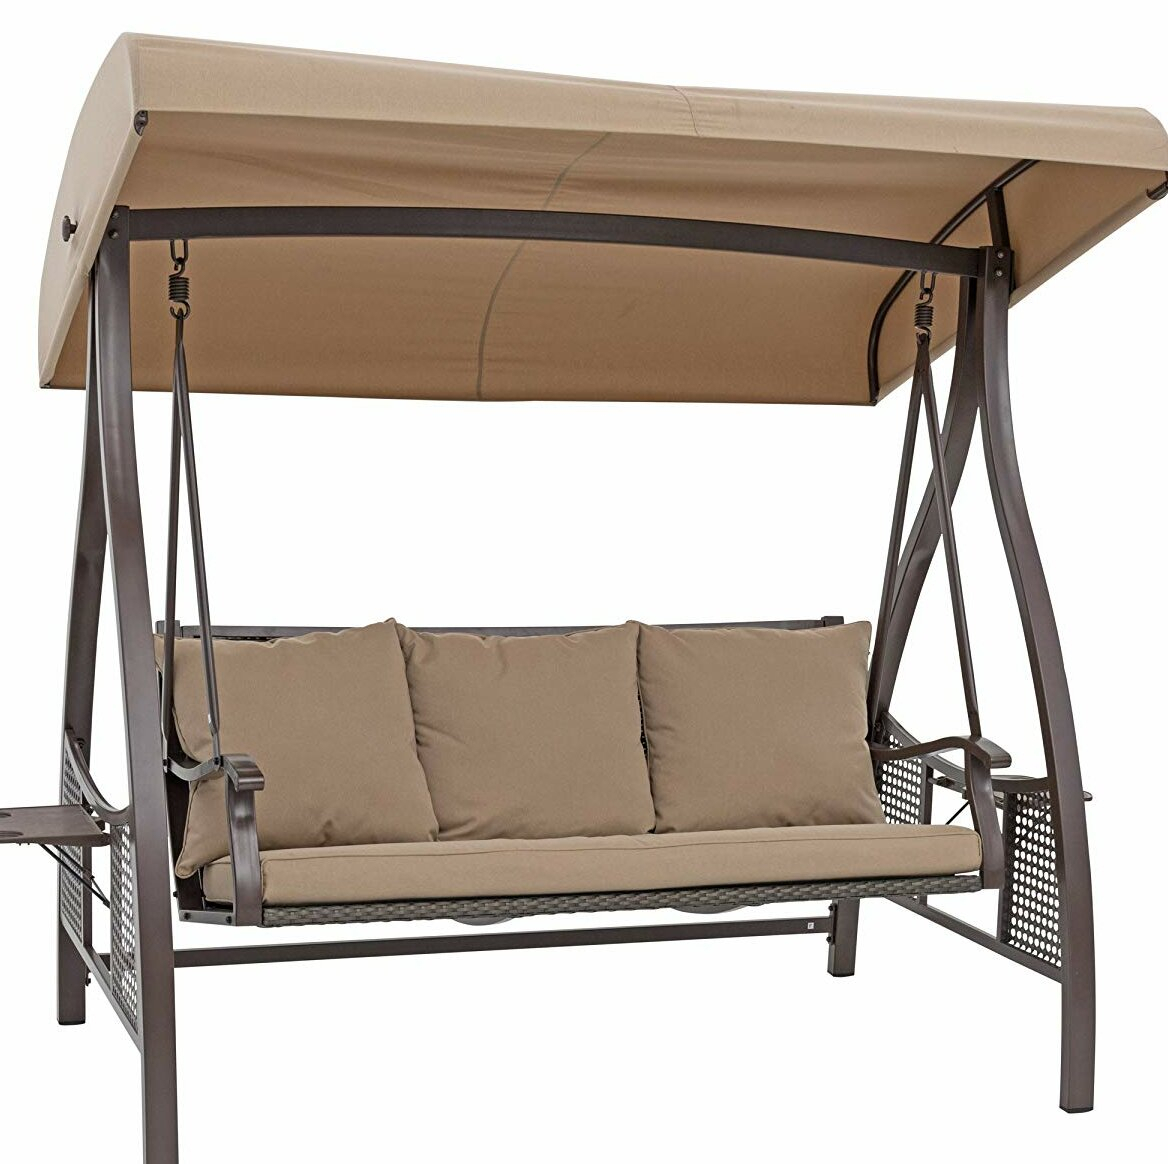 Chenault Outdoor Canopy Hammock Porch Swing With Stand Within Outdoor Canopy Hammock Porch Swings With Stand (View 2 of 25)